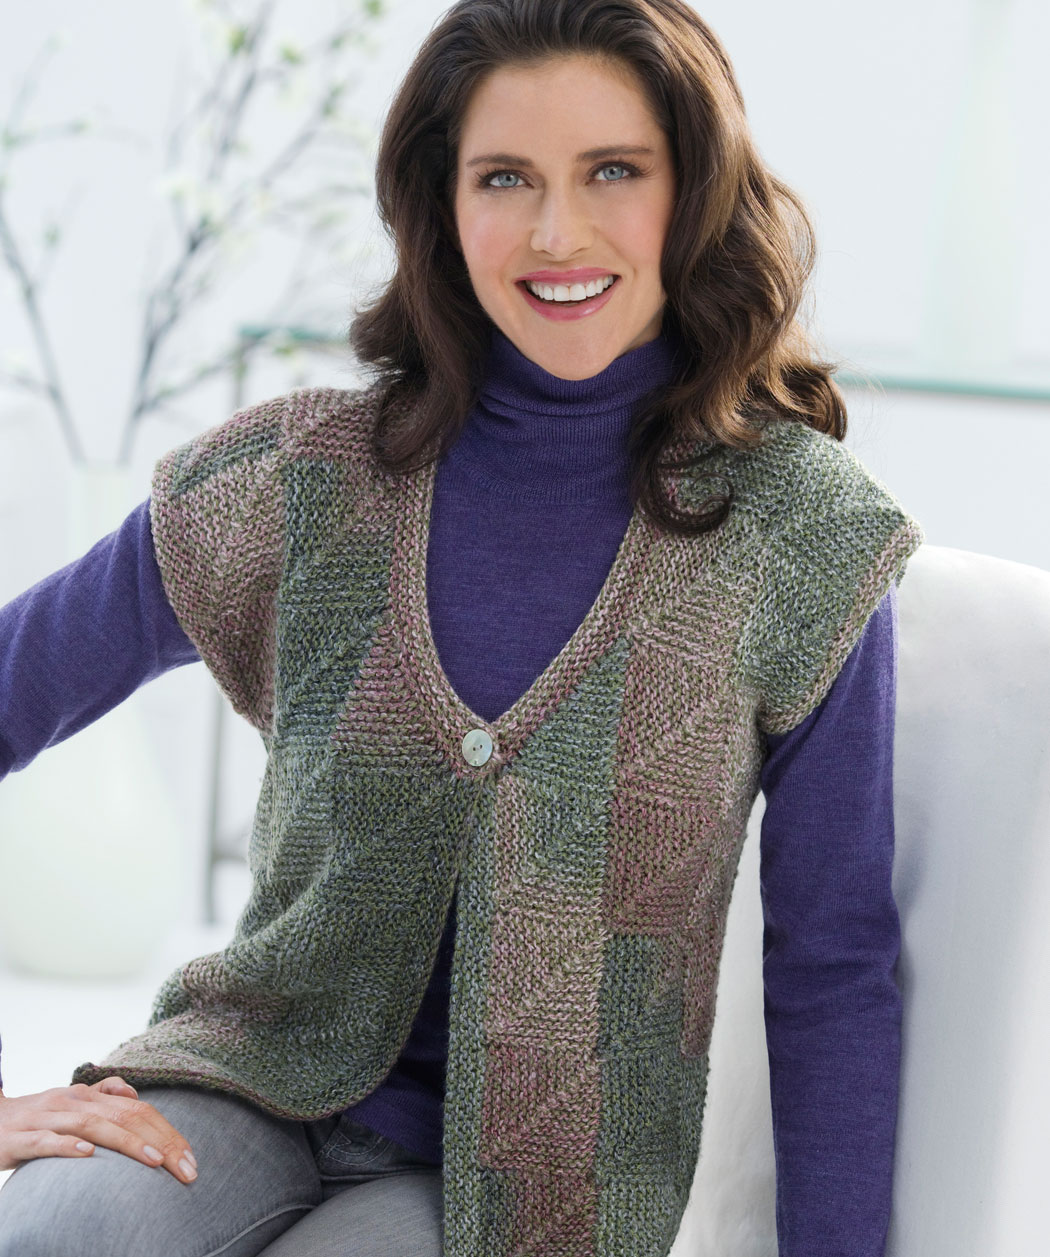 Knitting Patterns For Women : Knitted Vest Patterns A Knitting Blog